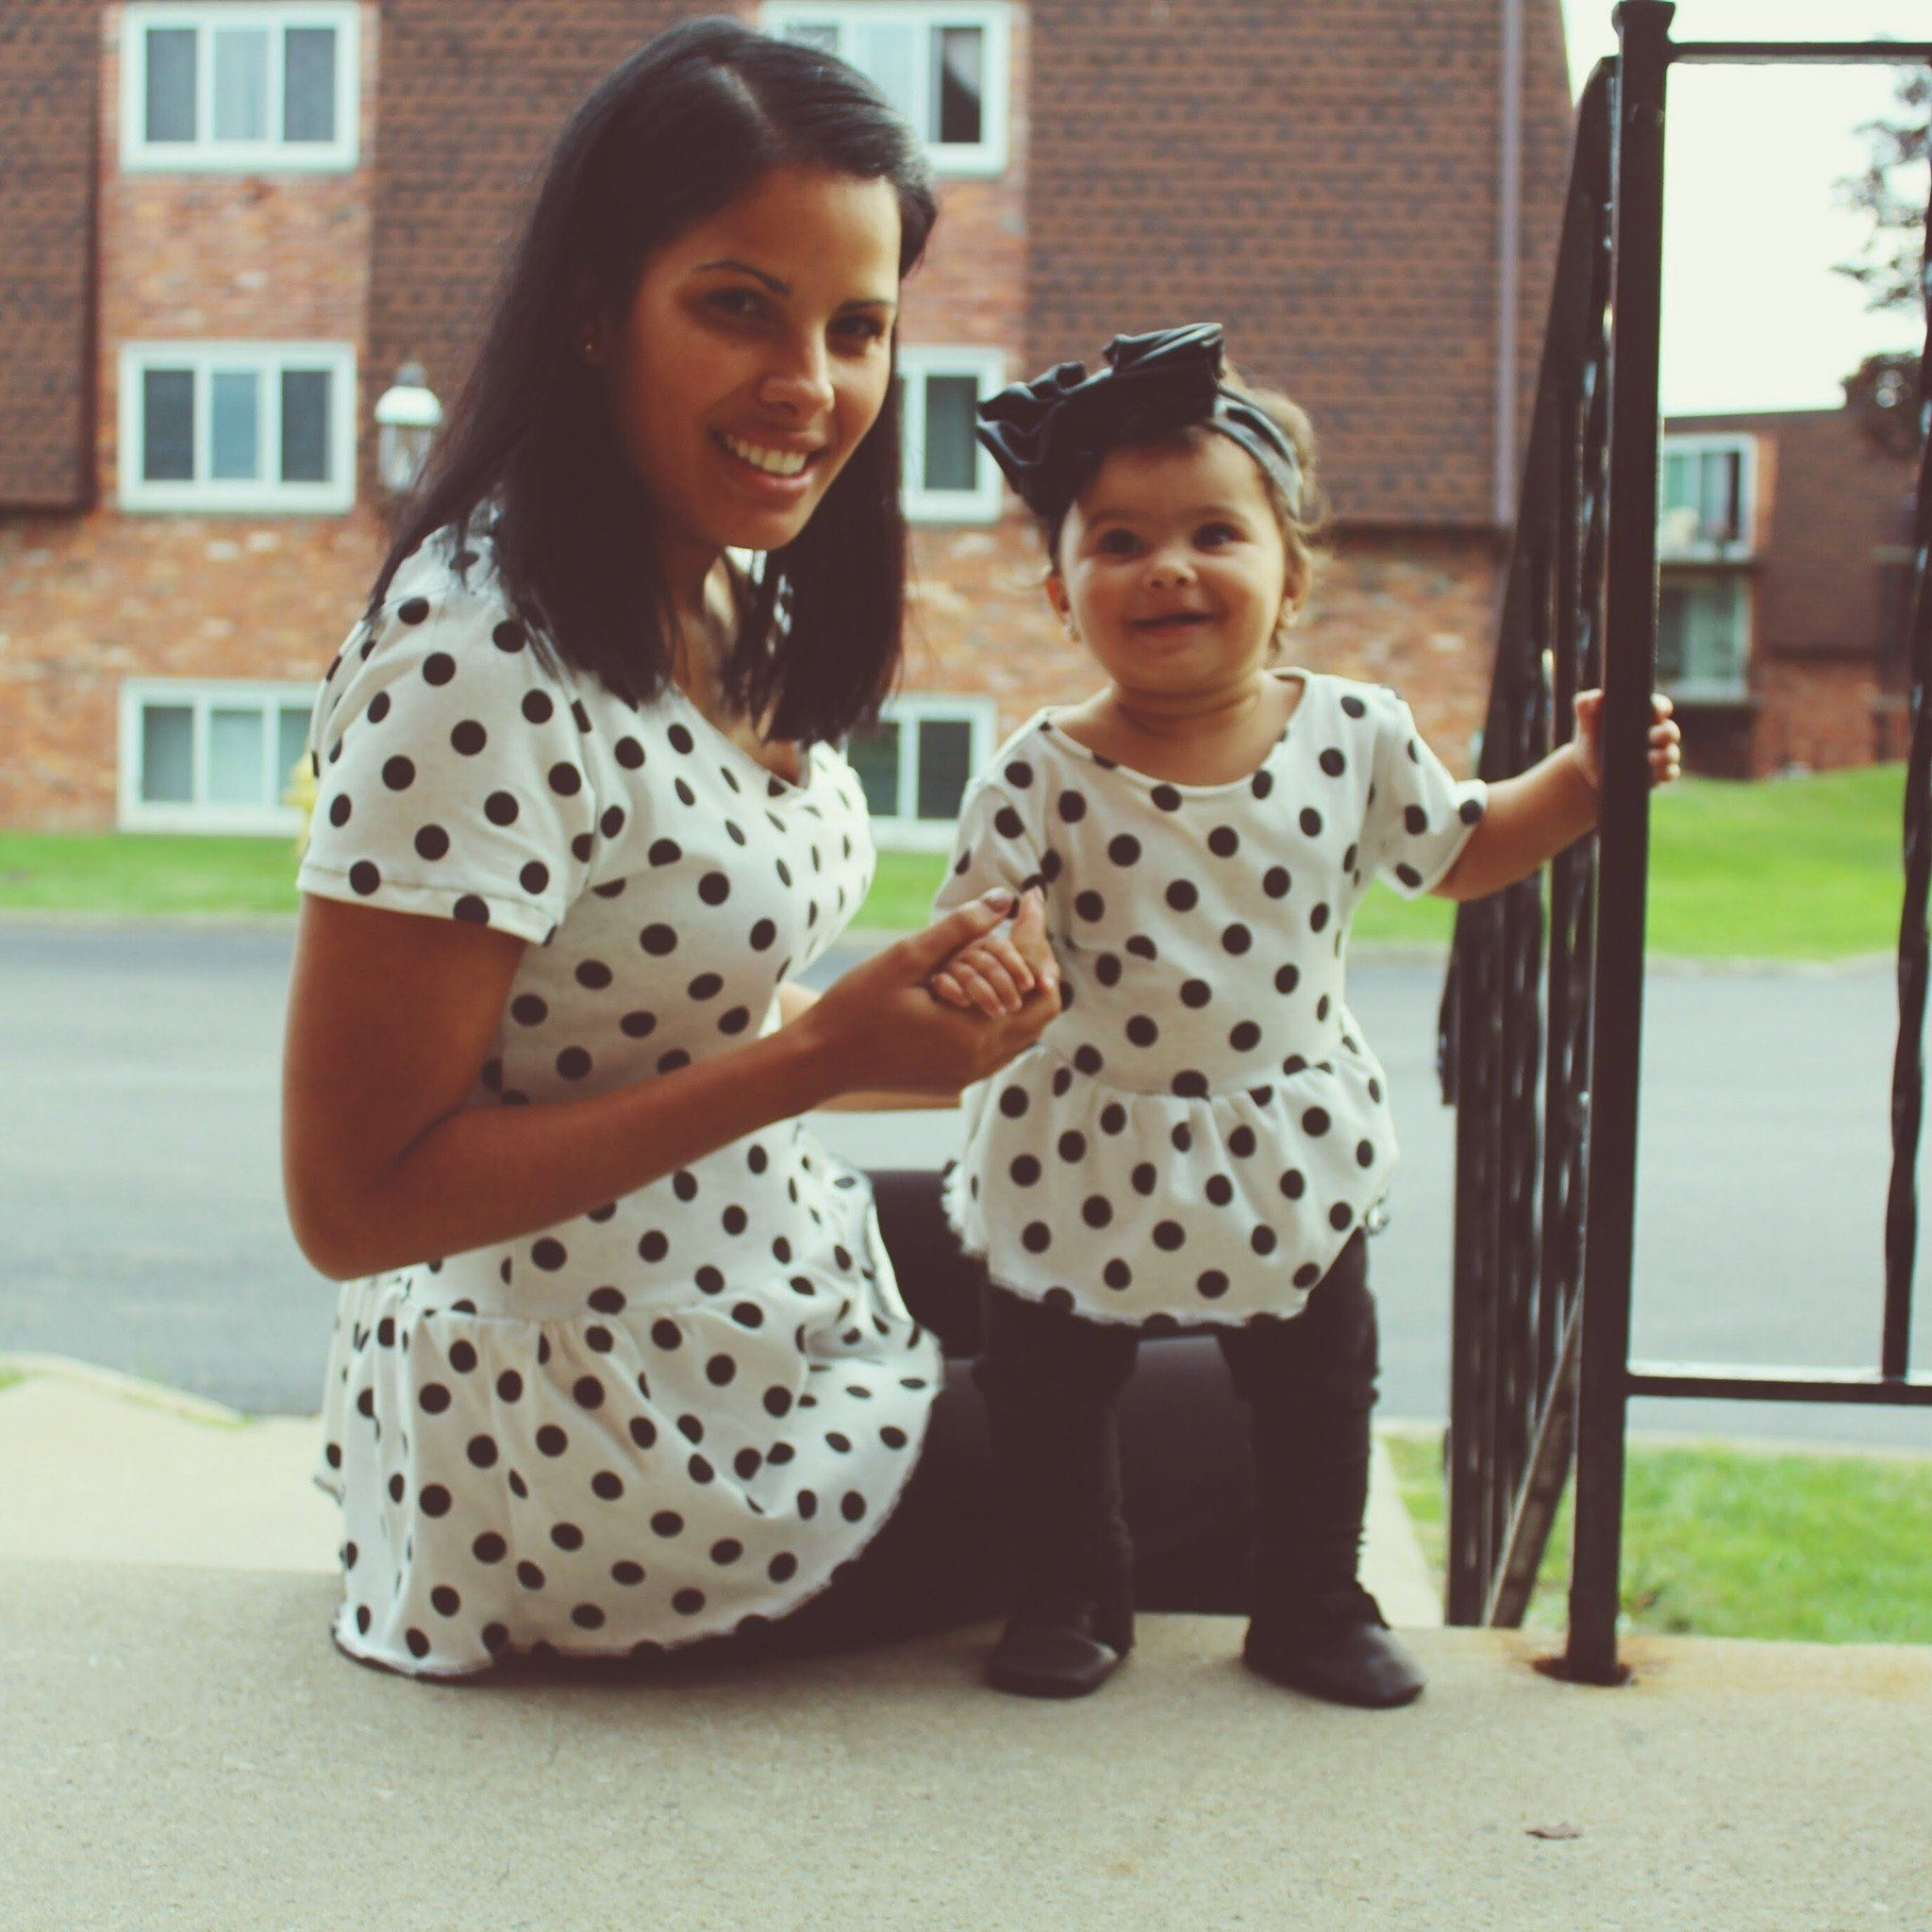 Top - Peplum Polka Dot Shirts For Baby Girl And Mom - Matching Set